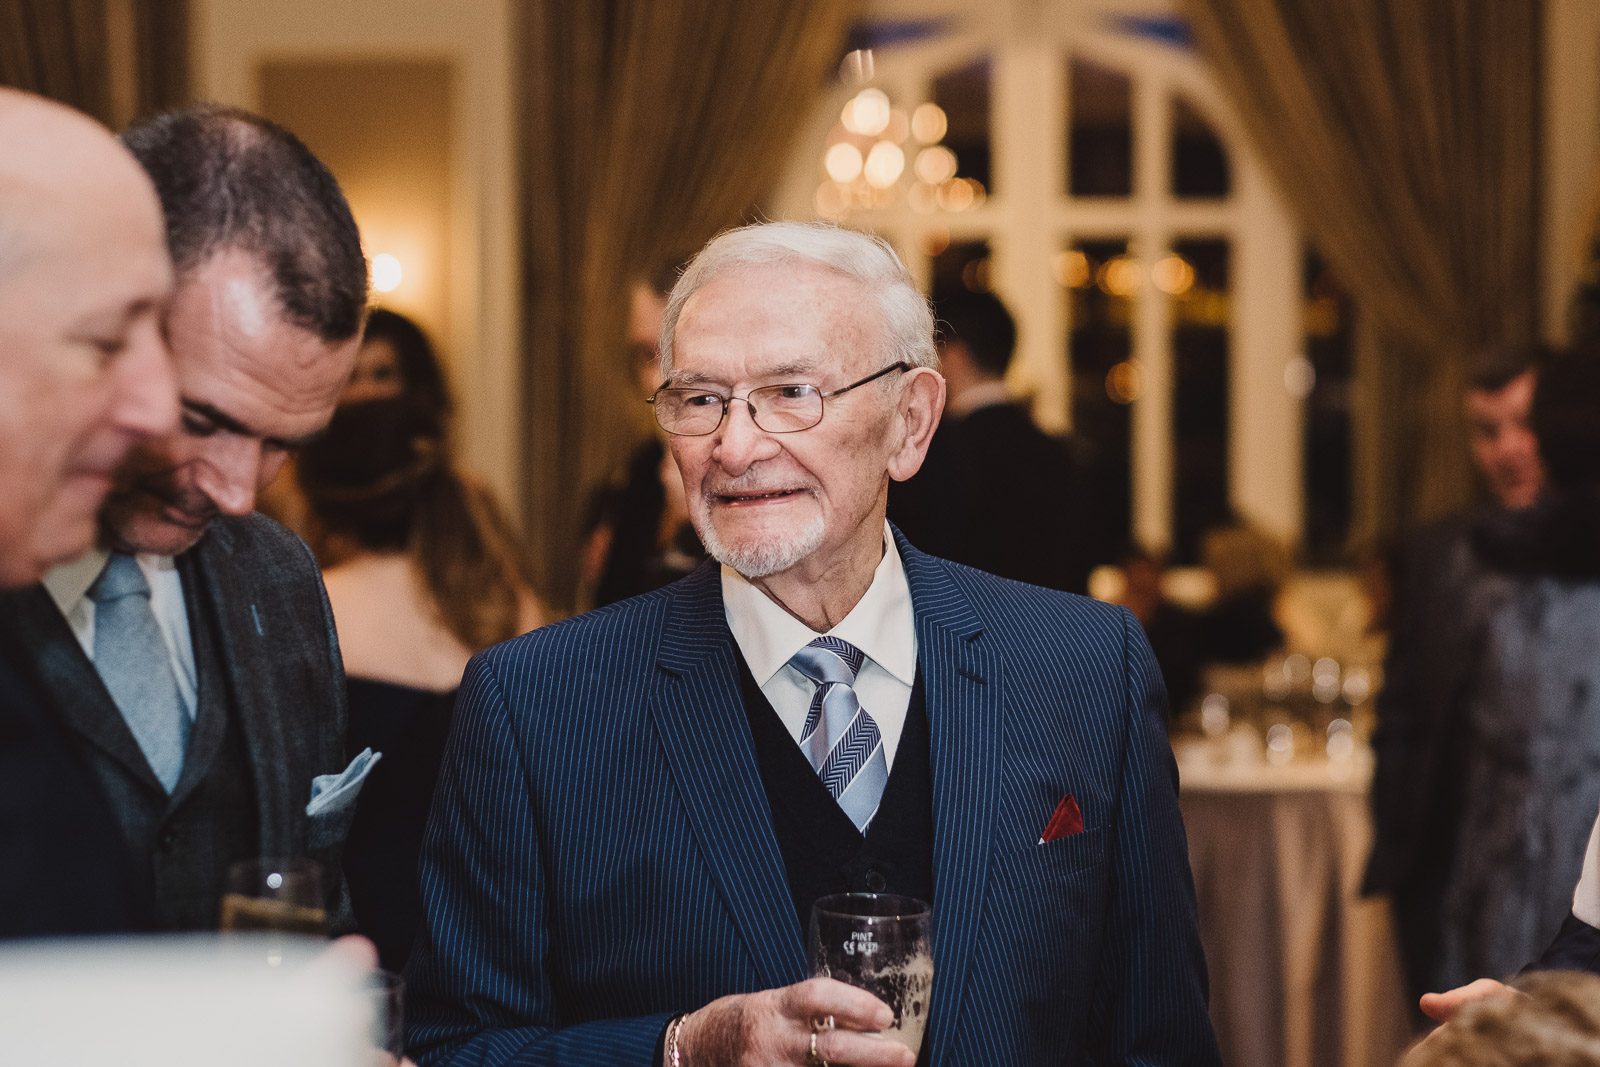 Adare_Manor_Wedding_Photos-111